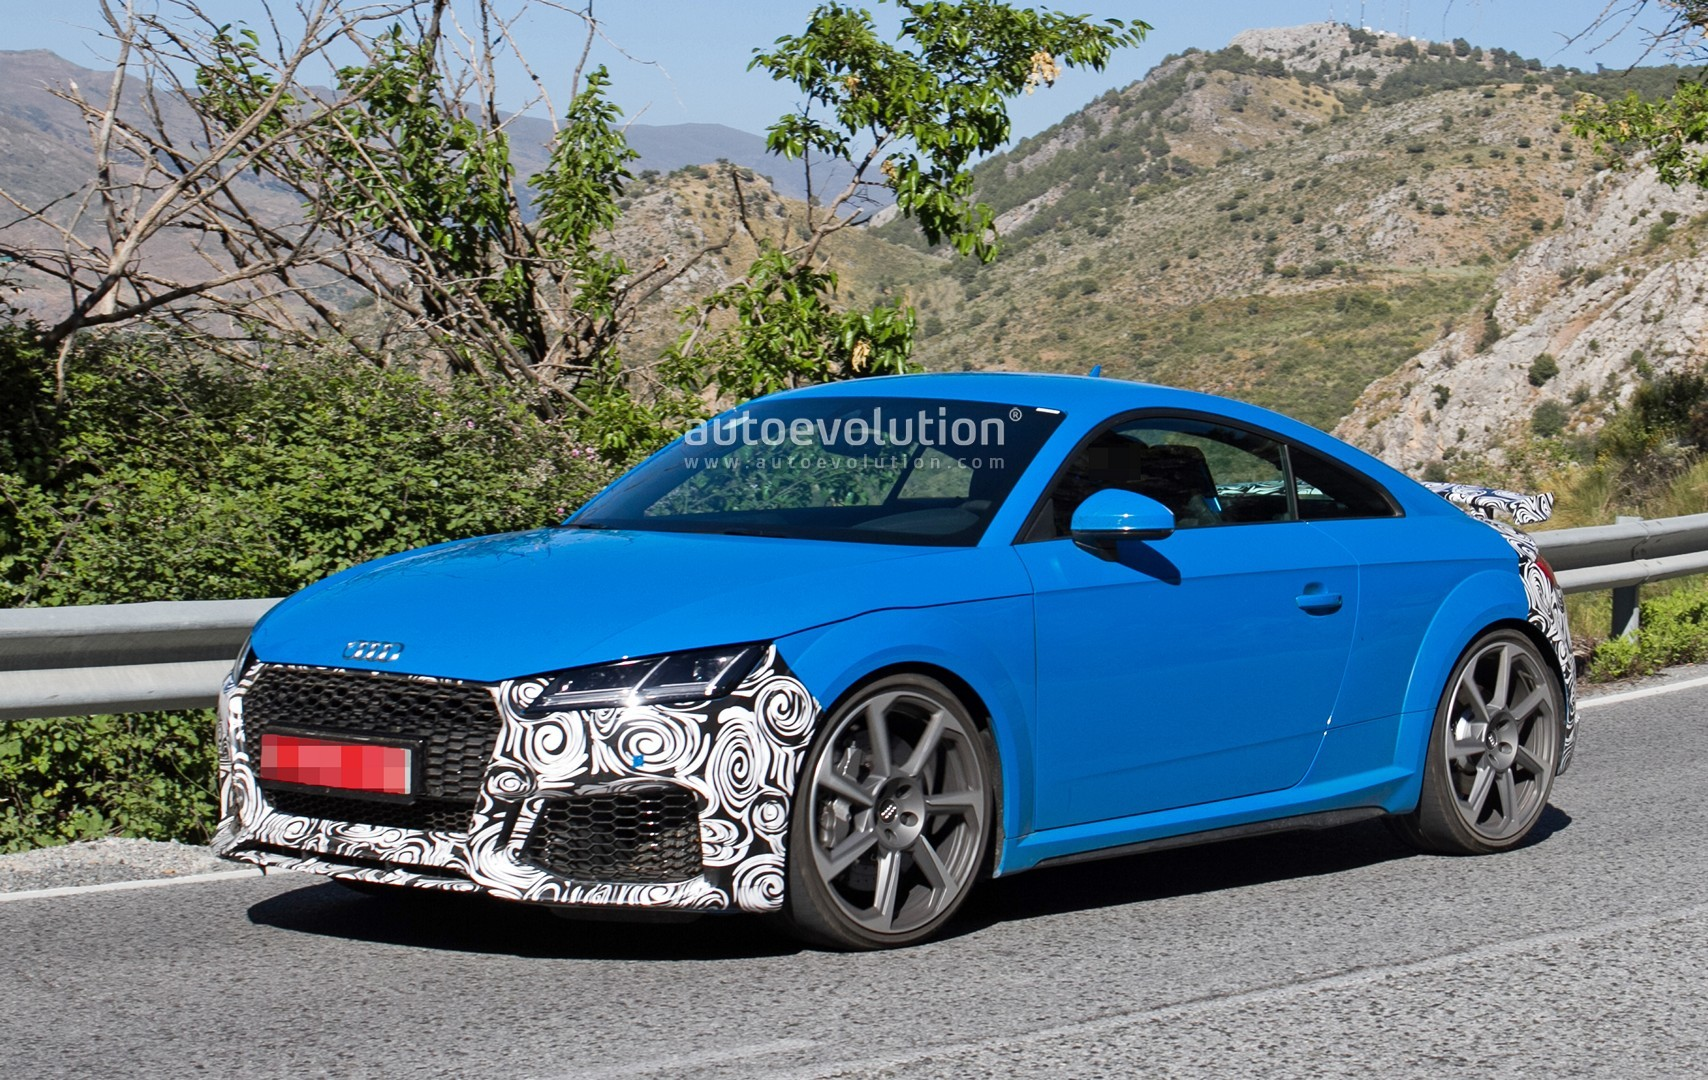 2019 audi tt rs spied with new rs look and fresh blue paint autoevolution. Black Bedroom Furniture Sets. Home Design Ideas